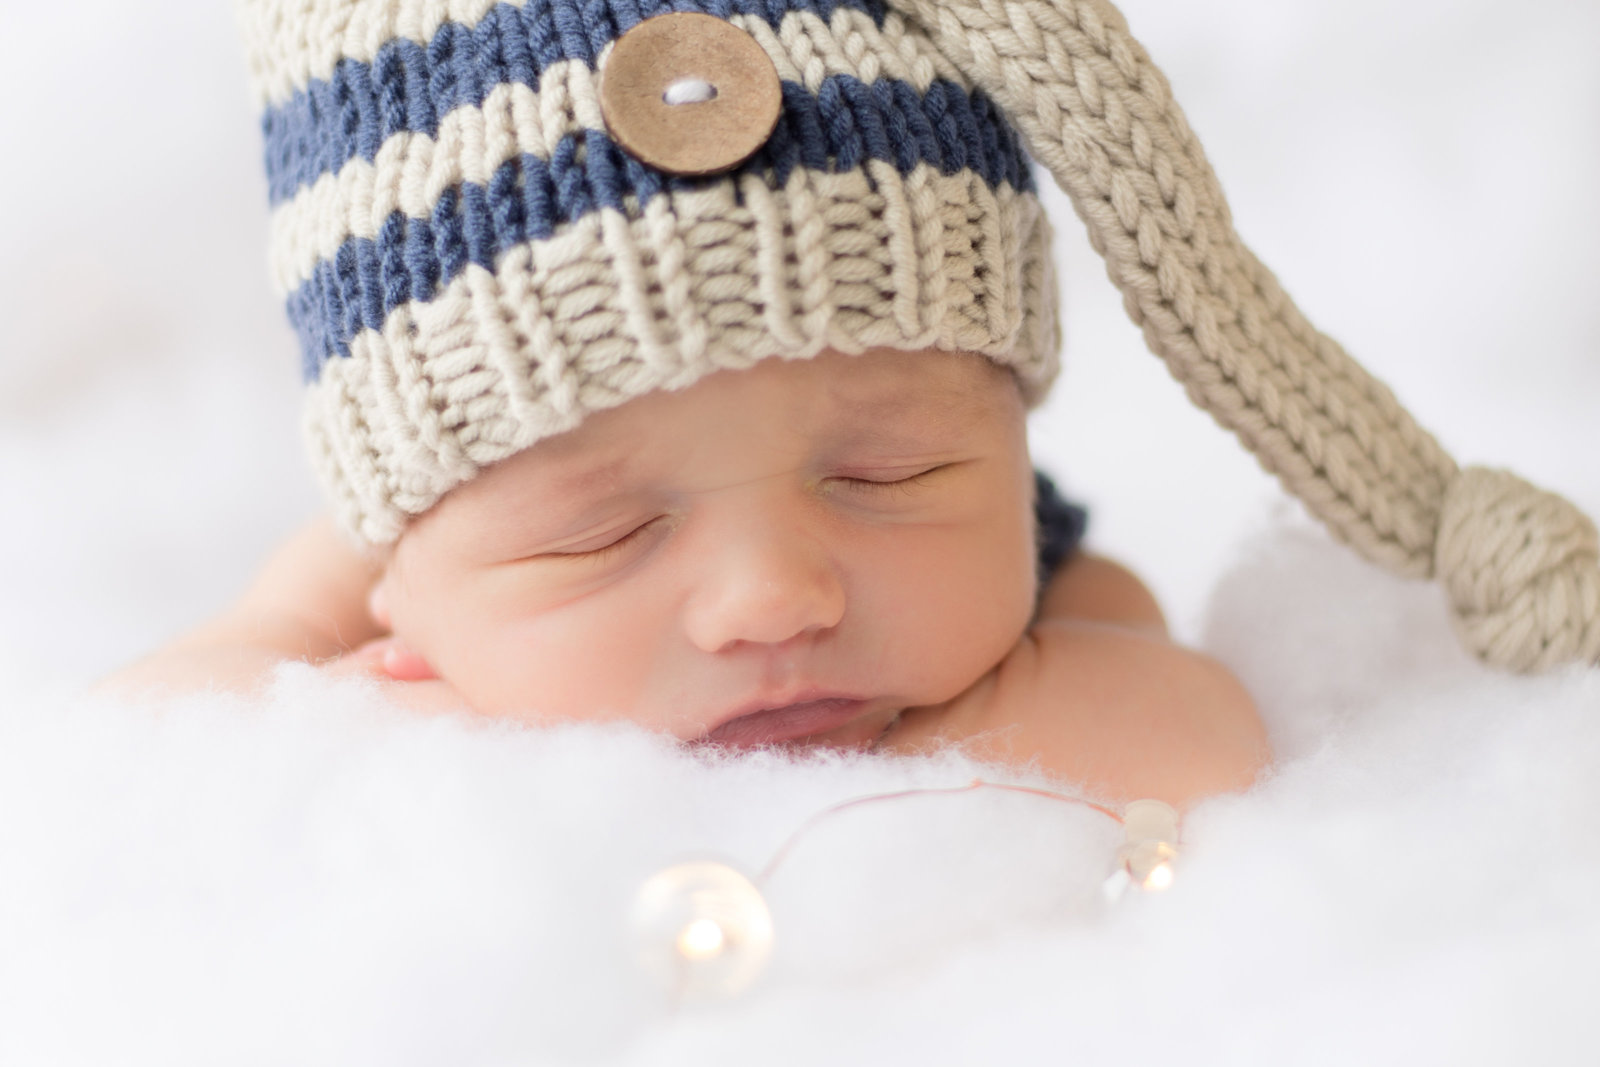 Baby Ethan Newborn Photo wearing sleepy night hat